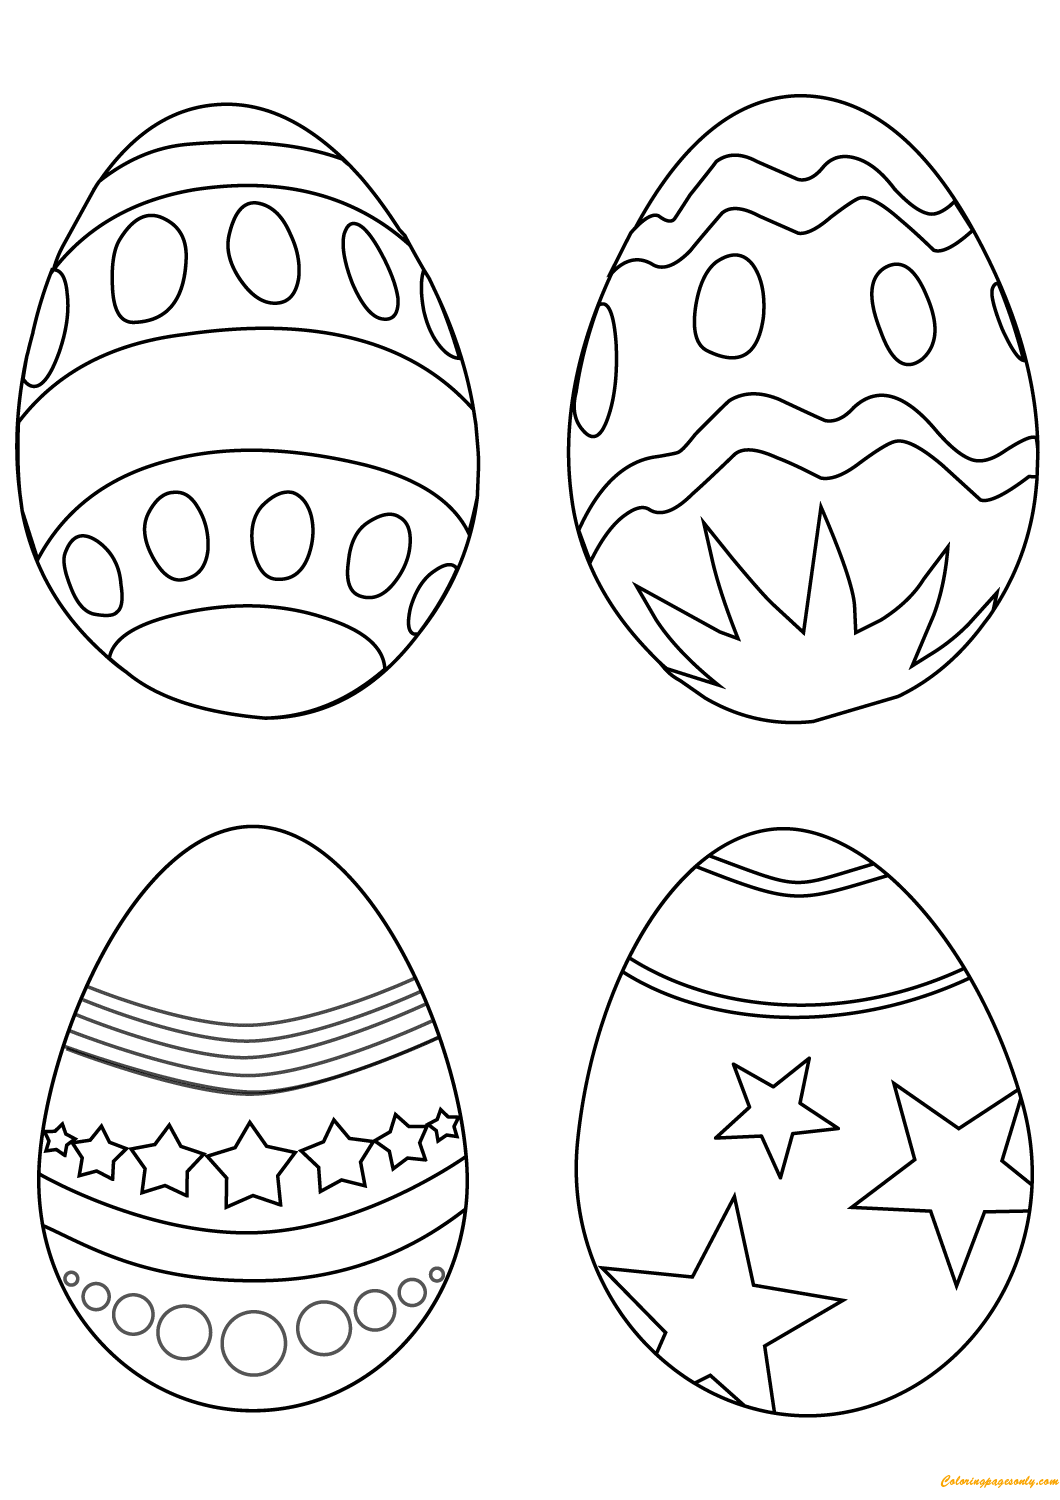 egg for colouring free printable easter egg coloring pages for kids colouring for egg